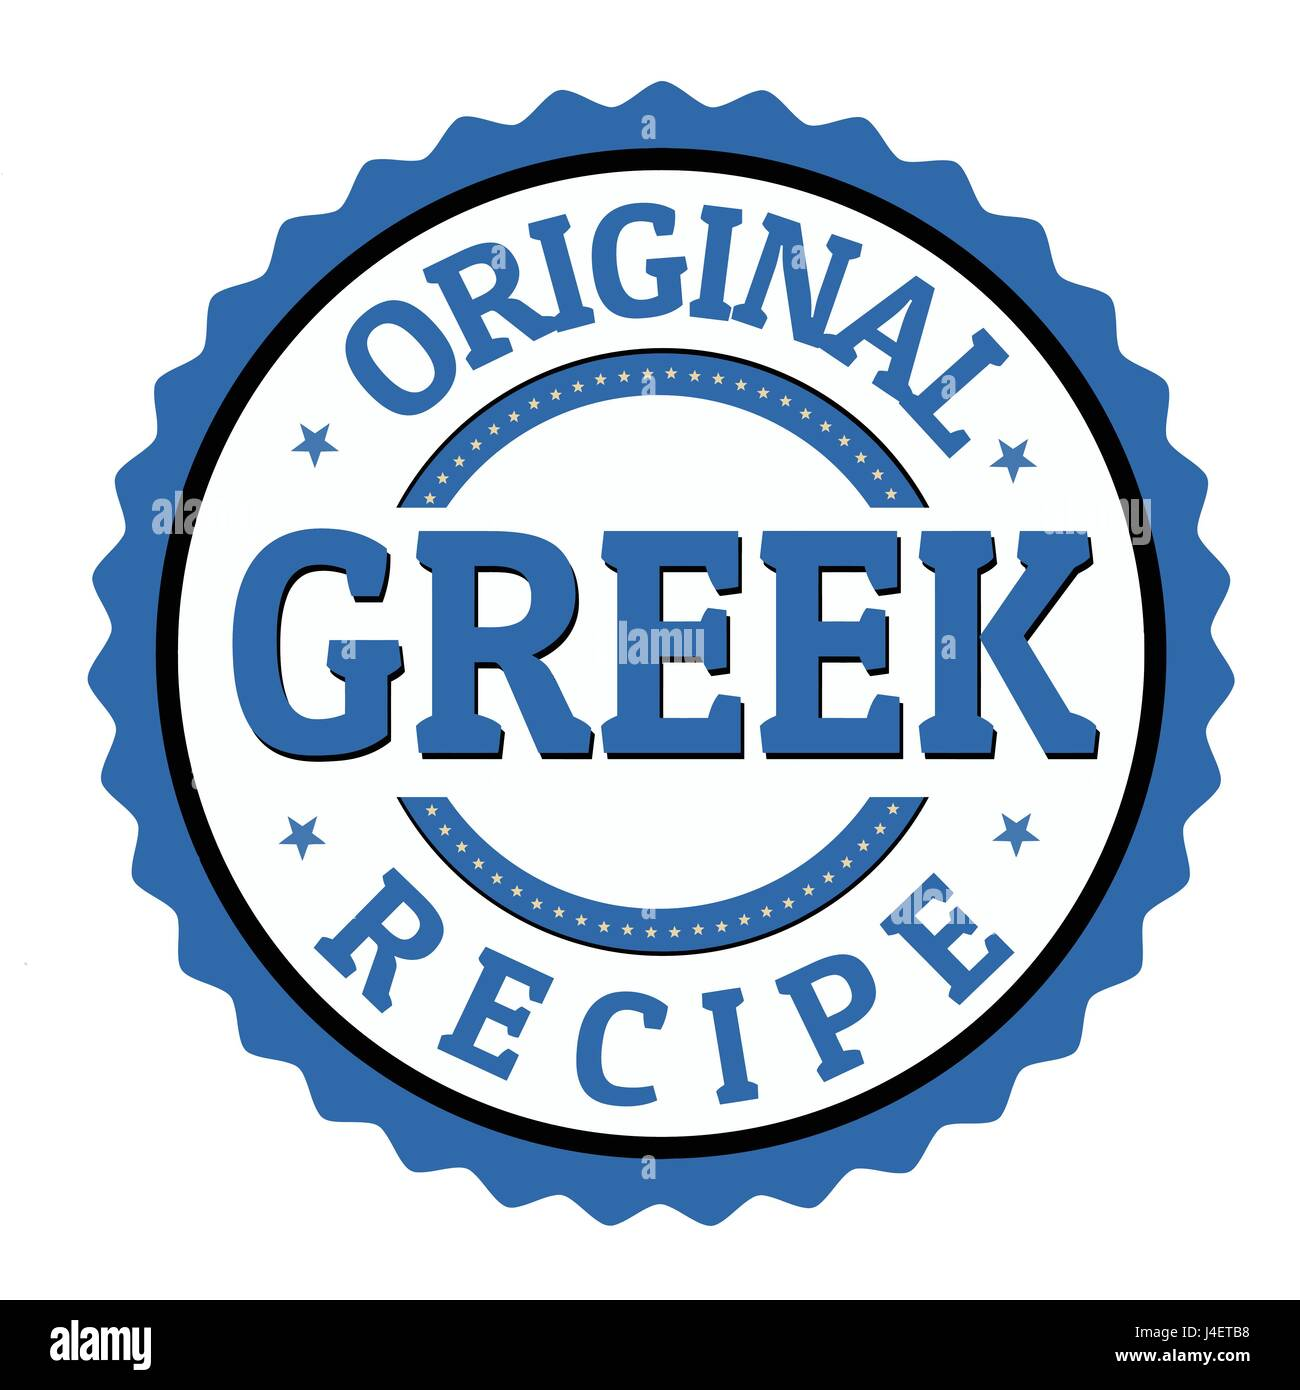 Original greek recipe label or sticker on white background, vector illustration - Stock Vector